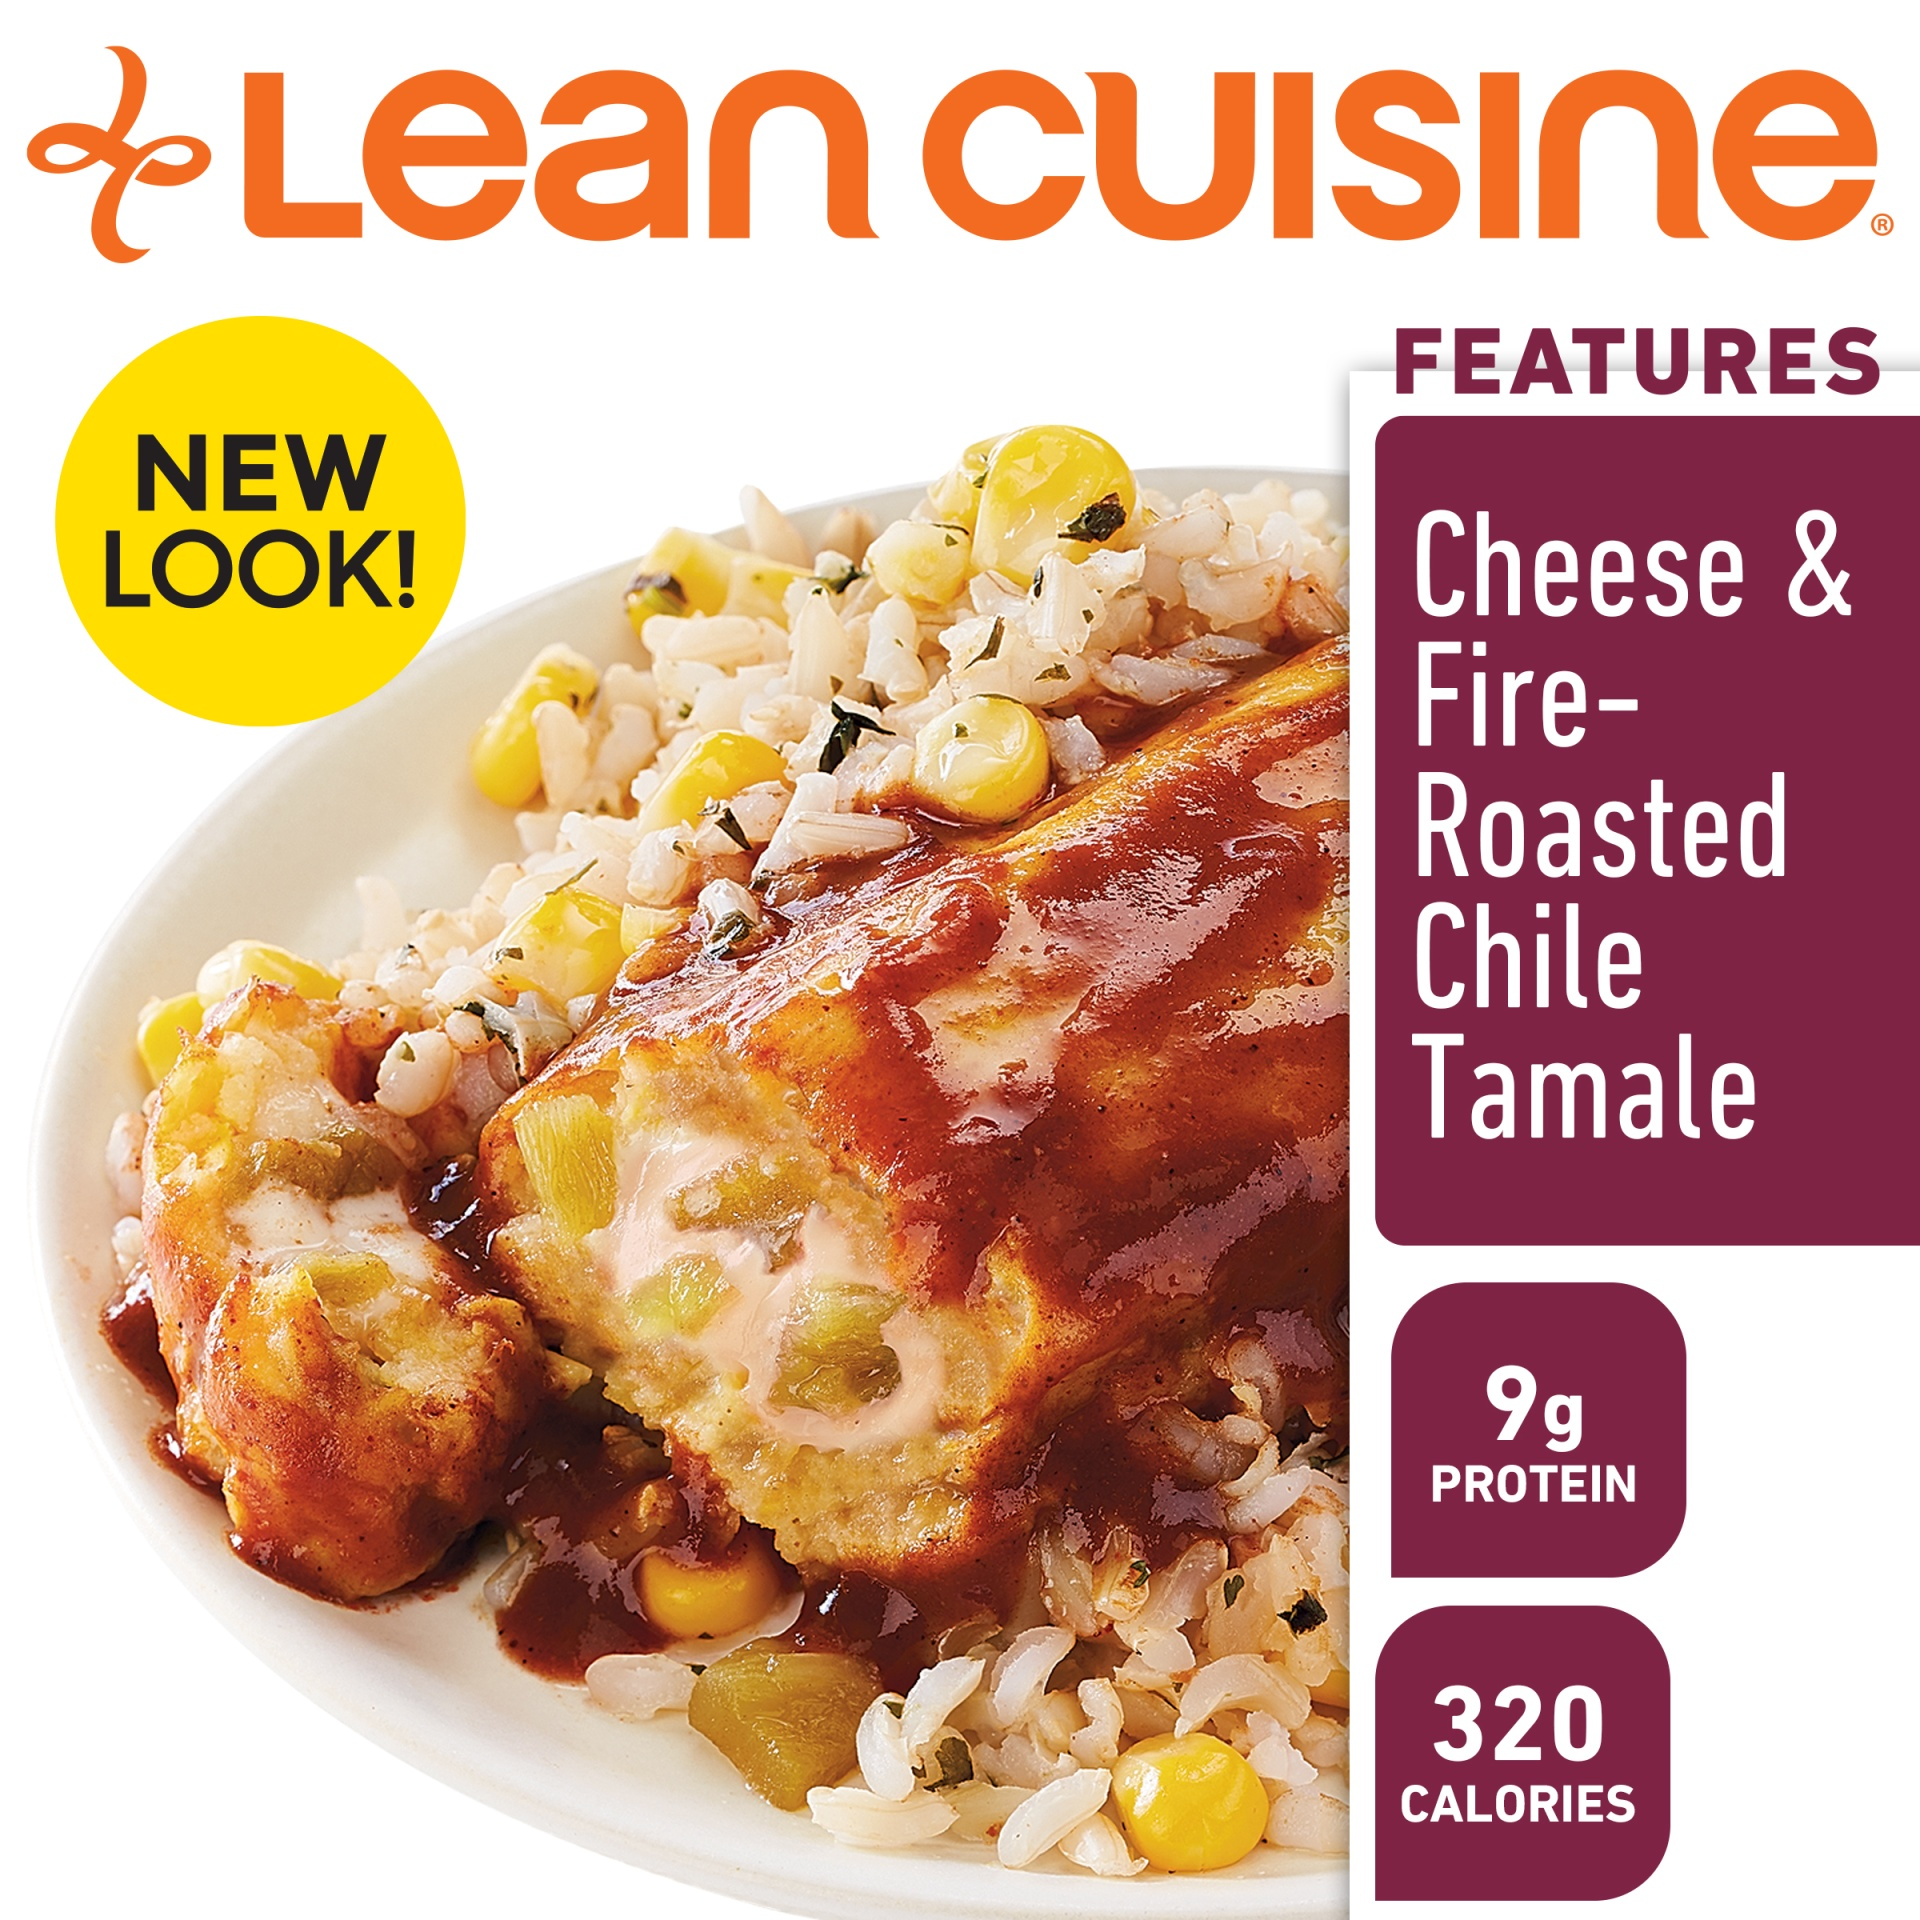 slide 2 of 9, Lean Cuisine Marketplace Cheese & Fire Roasted Chile Tamale,